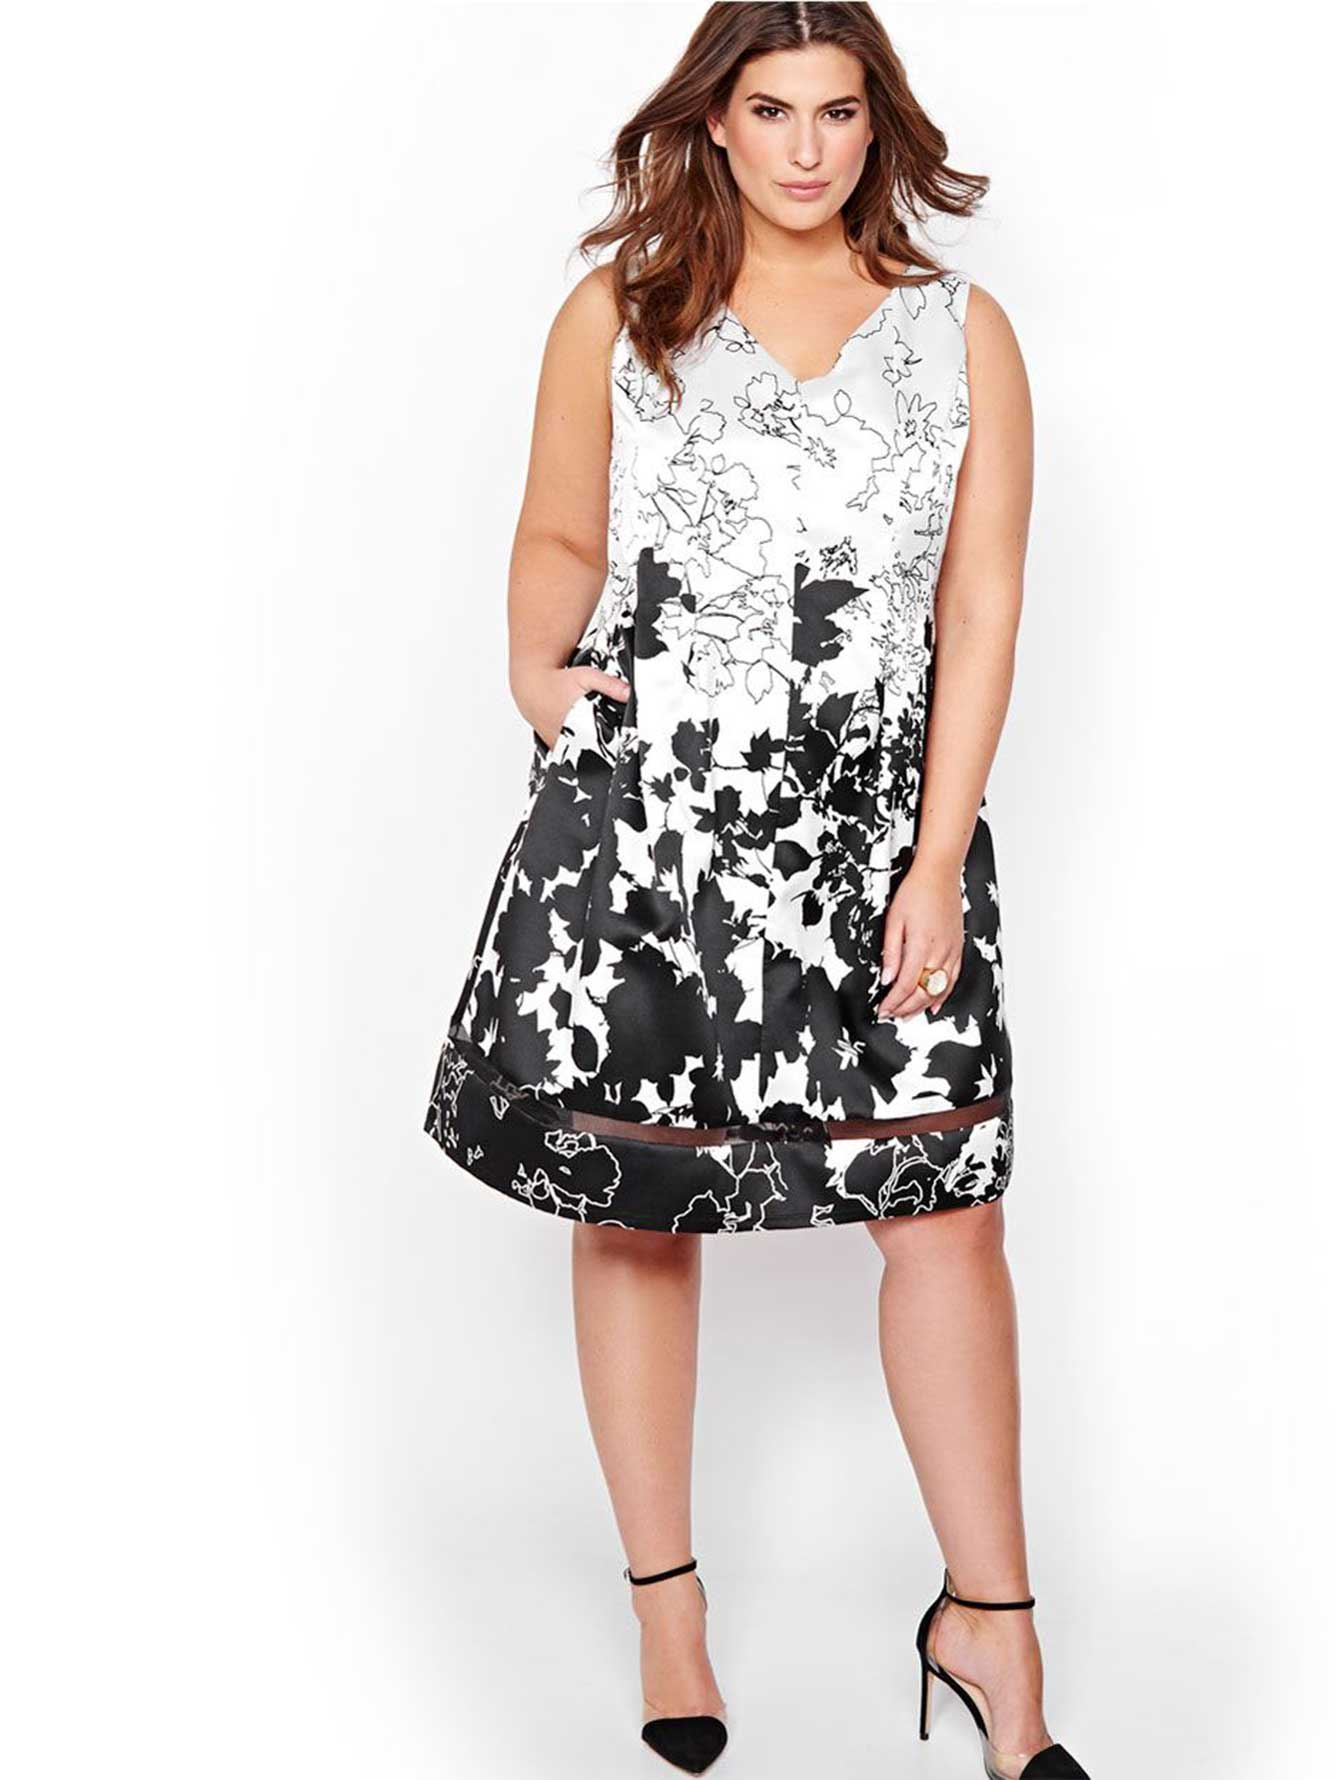 Michel Studio White Fit Flare Dress With Black Flowers Addition Elle